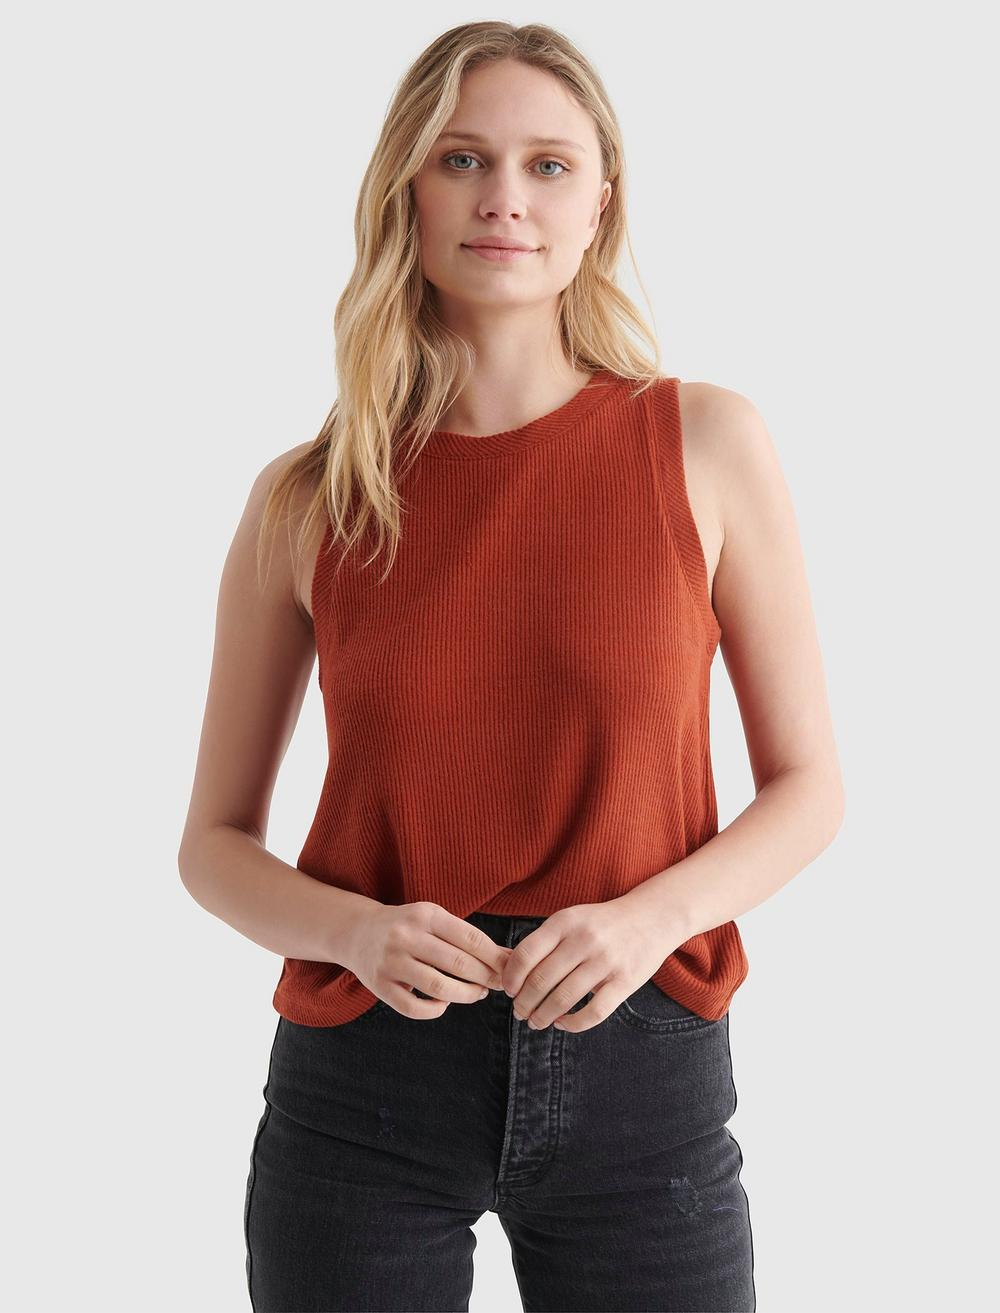 CLOUD JERSEY RELAXED TANK, image 1